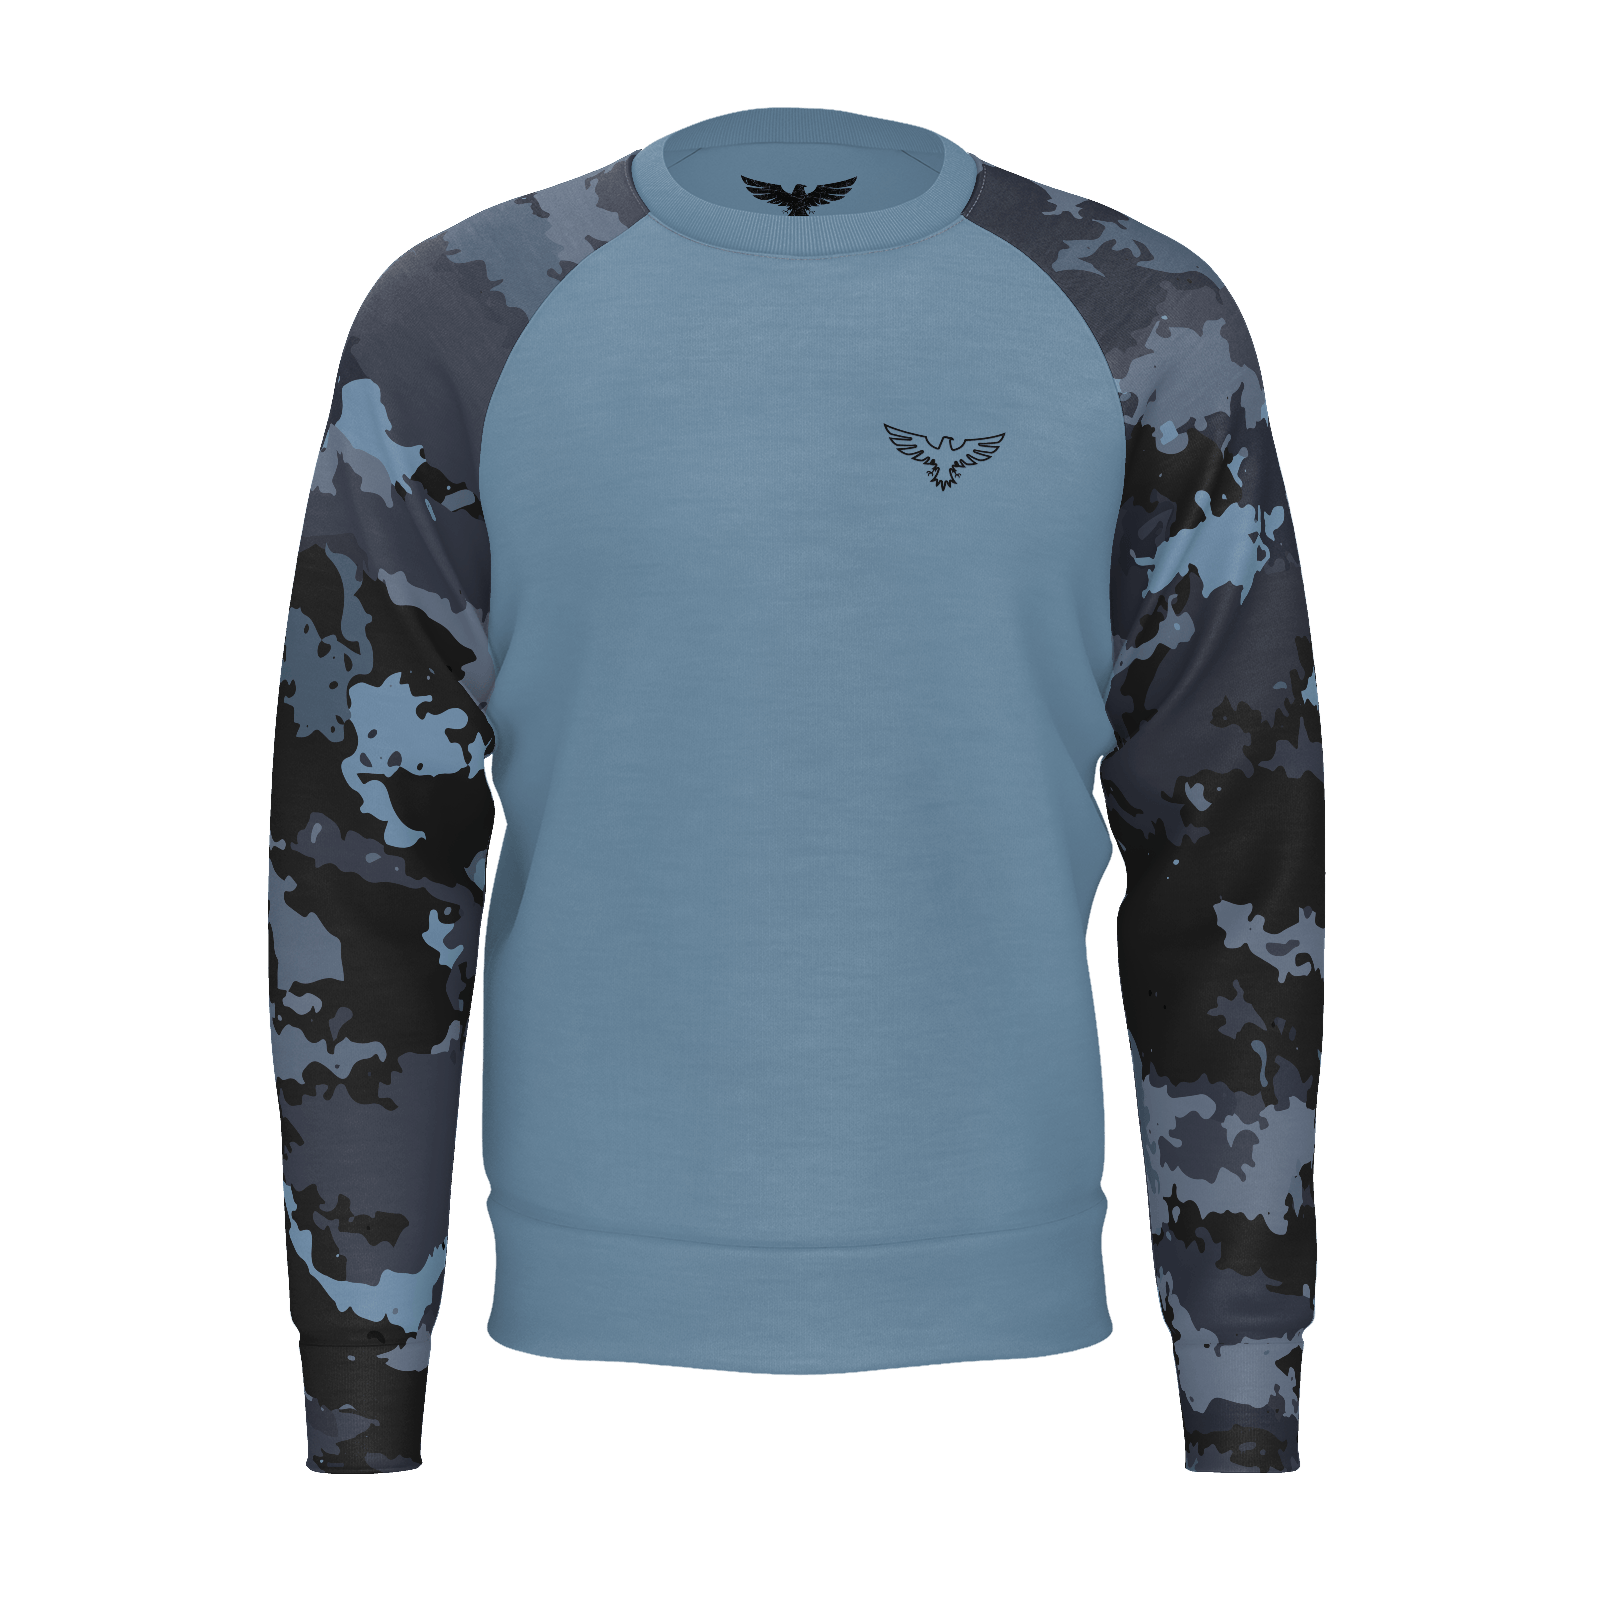 Men's Coast Camo Sustainable Lt. Blue Long Sleeve Raglan Sweatshirt - Find Your Coast Supply Co.